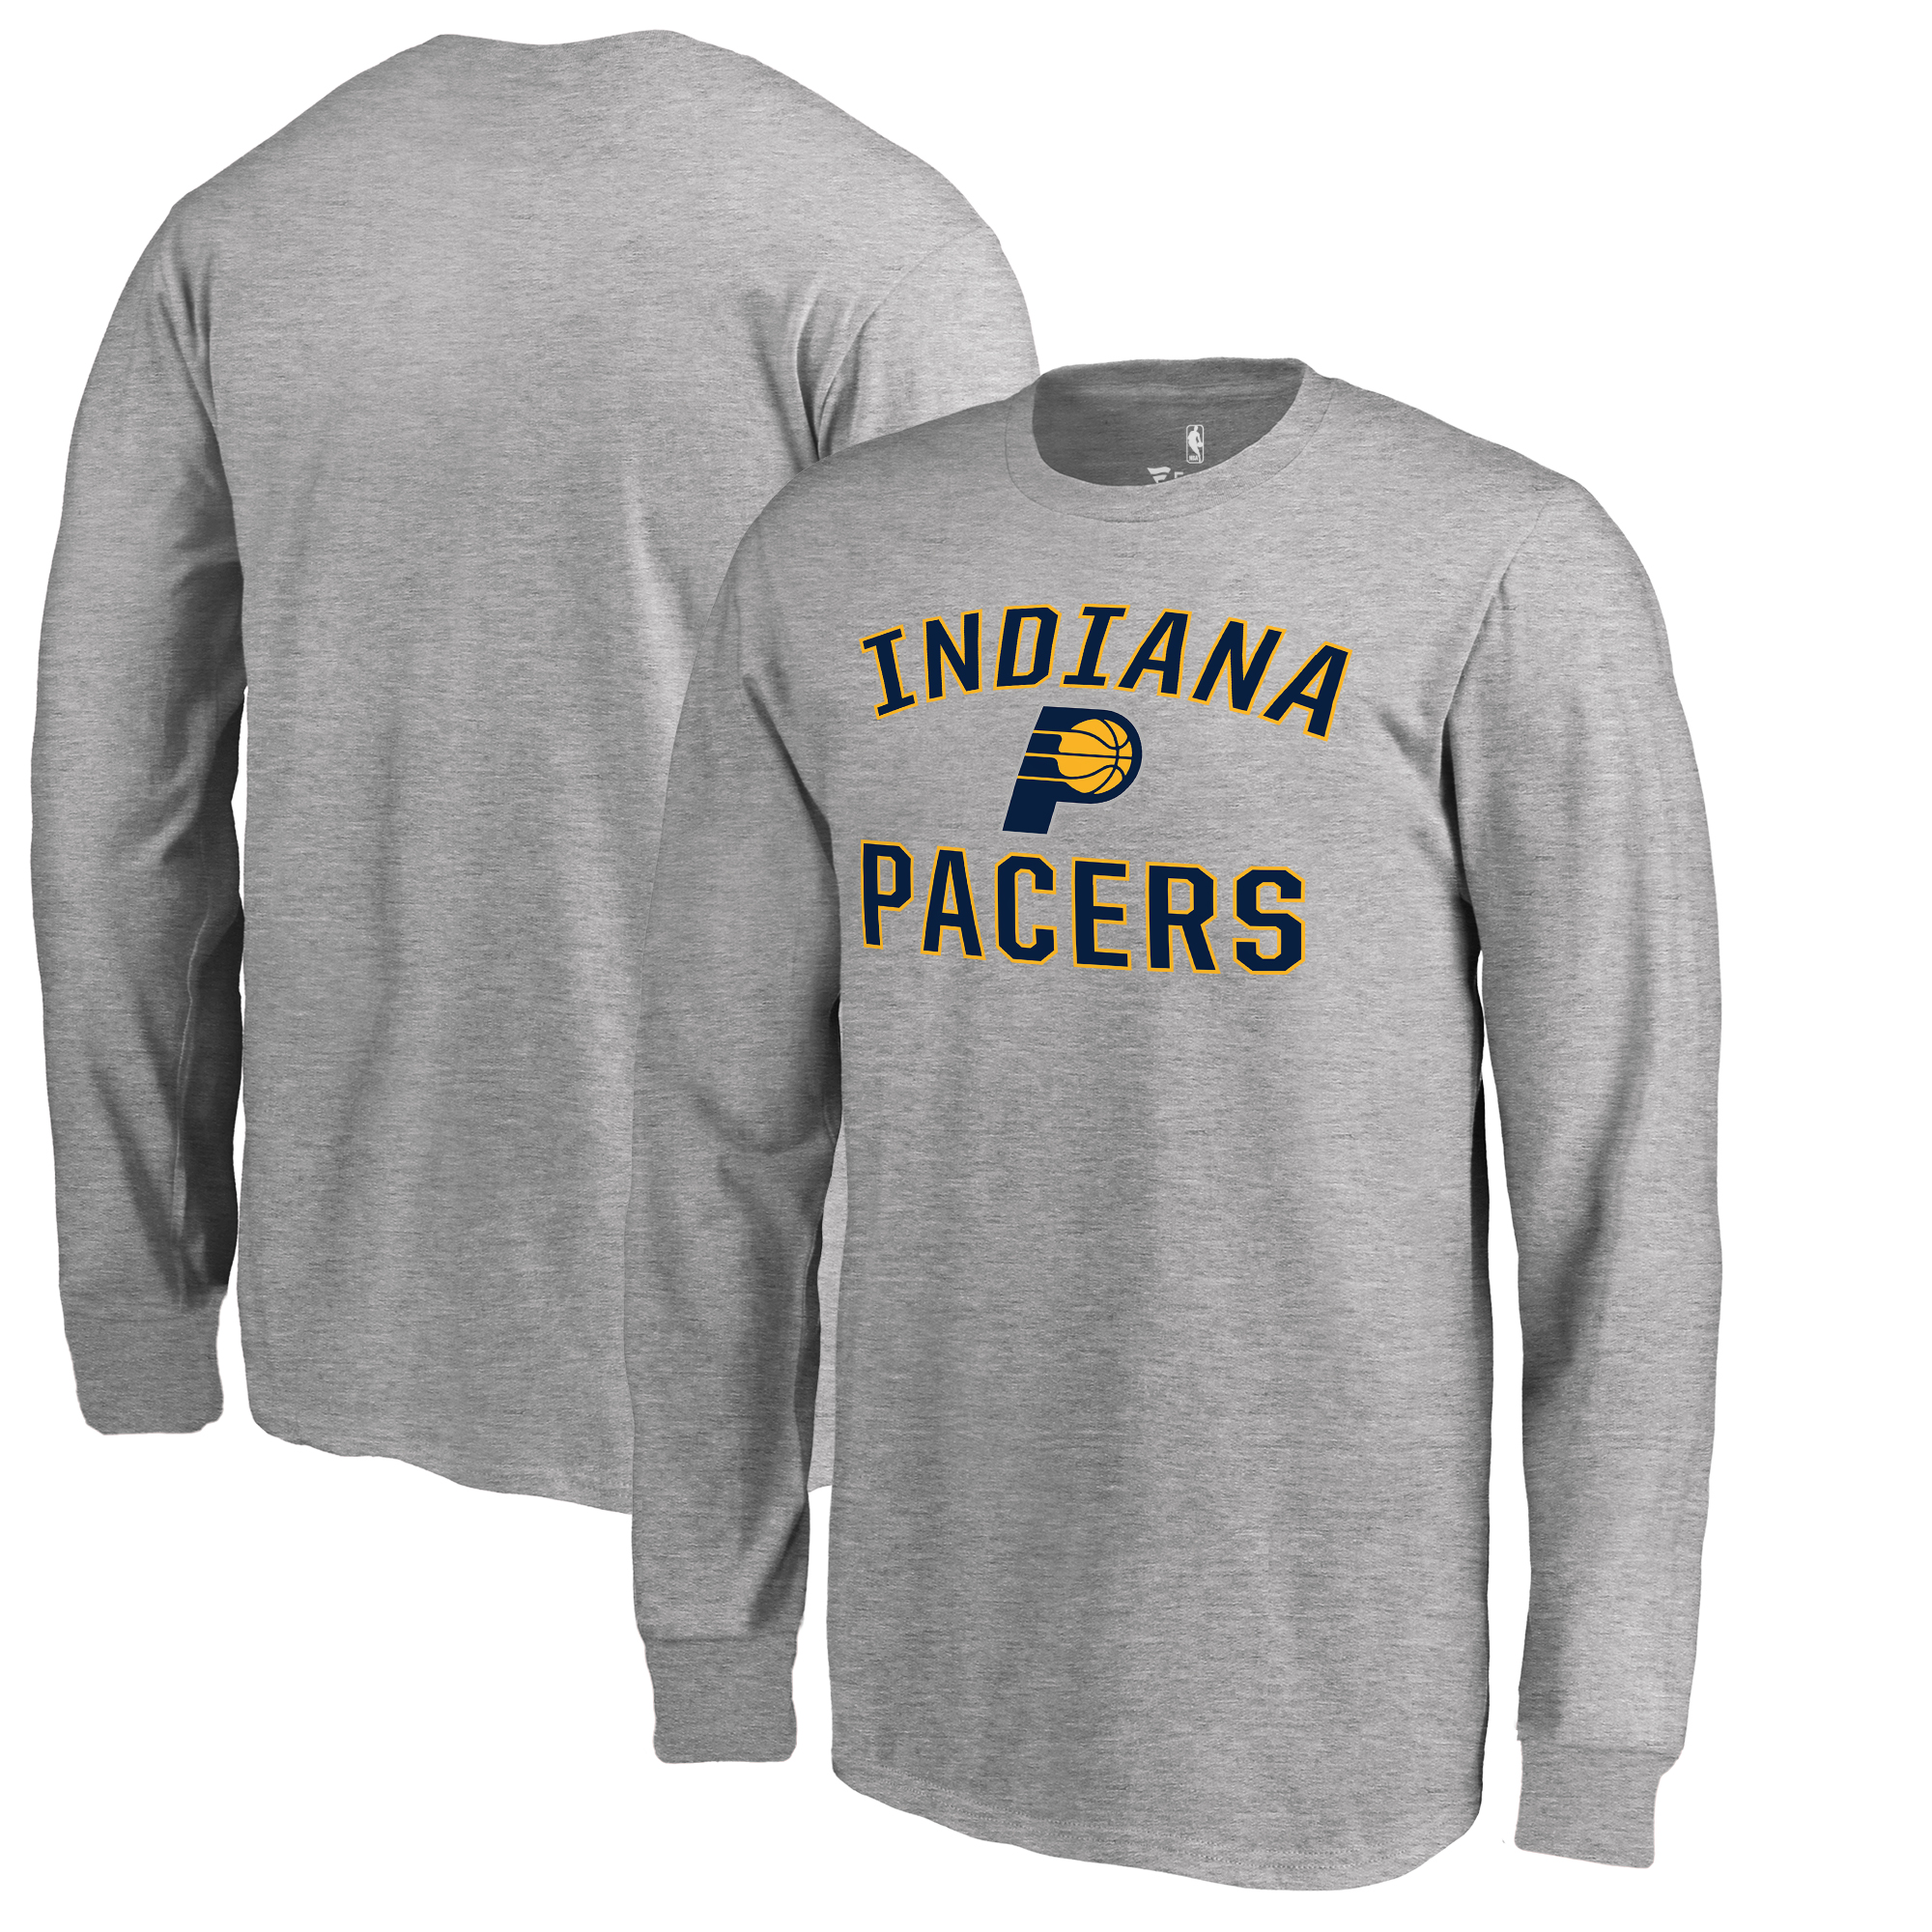 Indiana Pacers Fanatics Branded Youth Victory Arch Long Sleeve T-Shirt - Heathered Gray